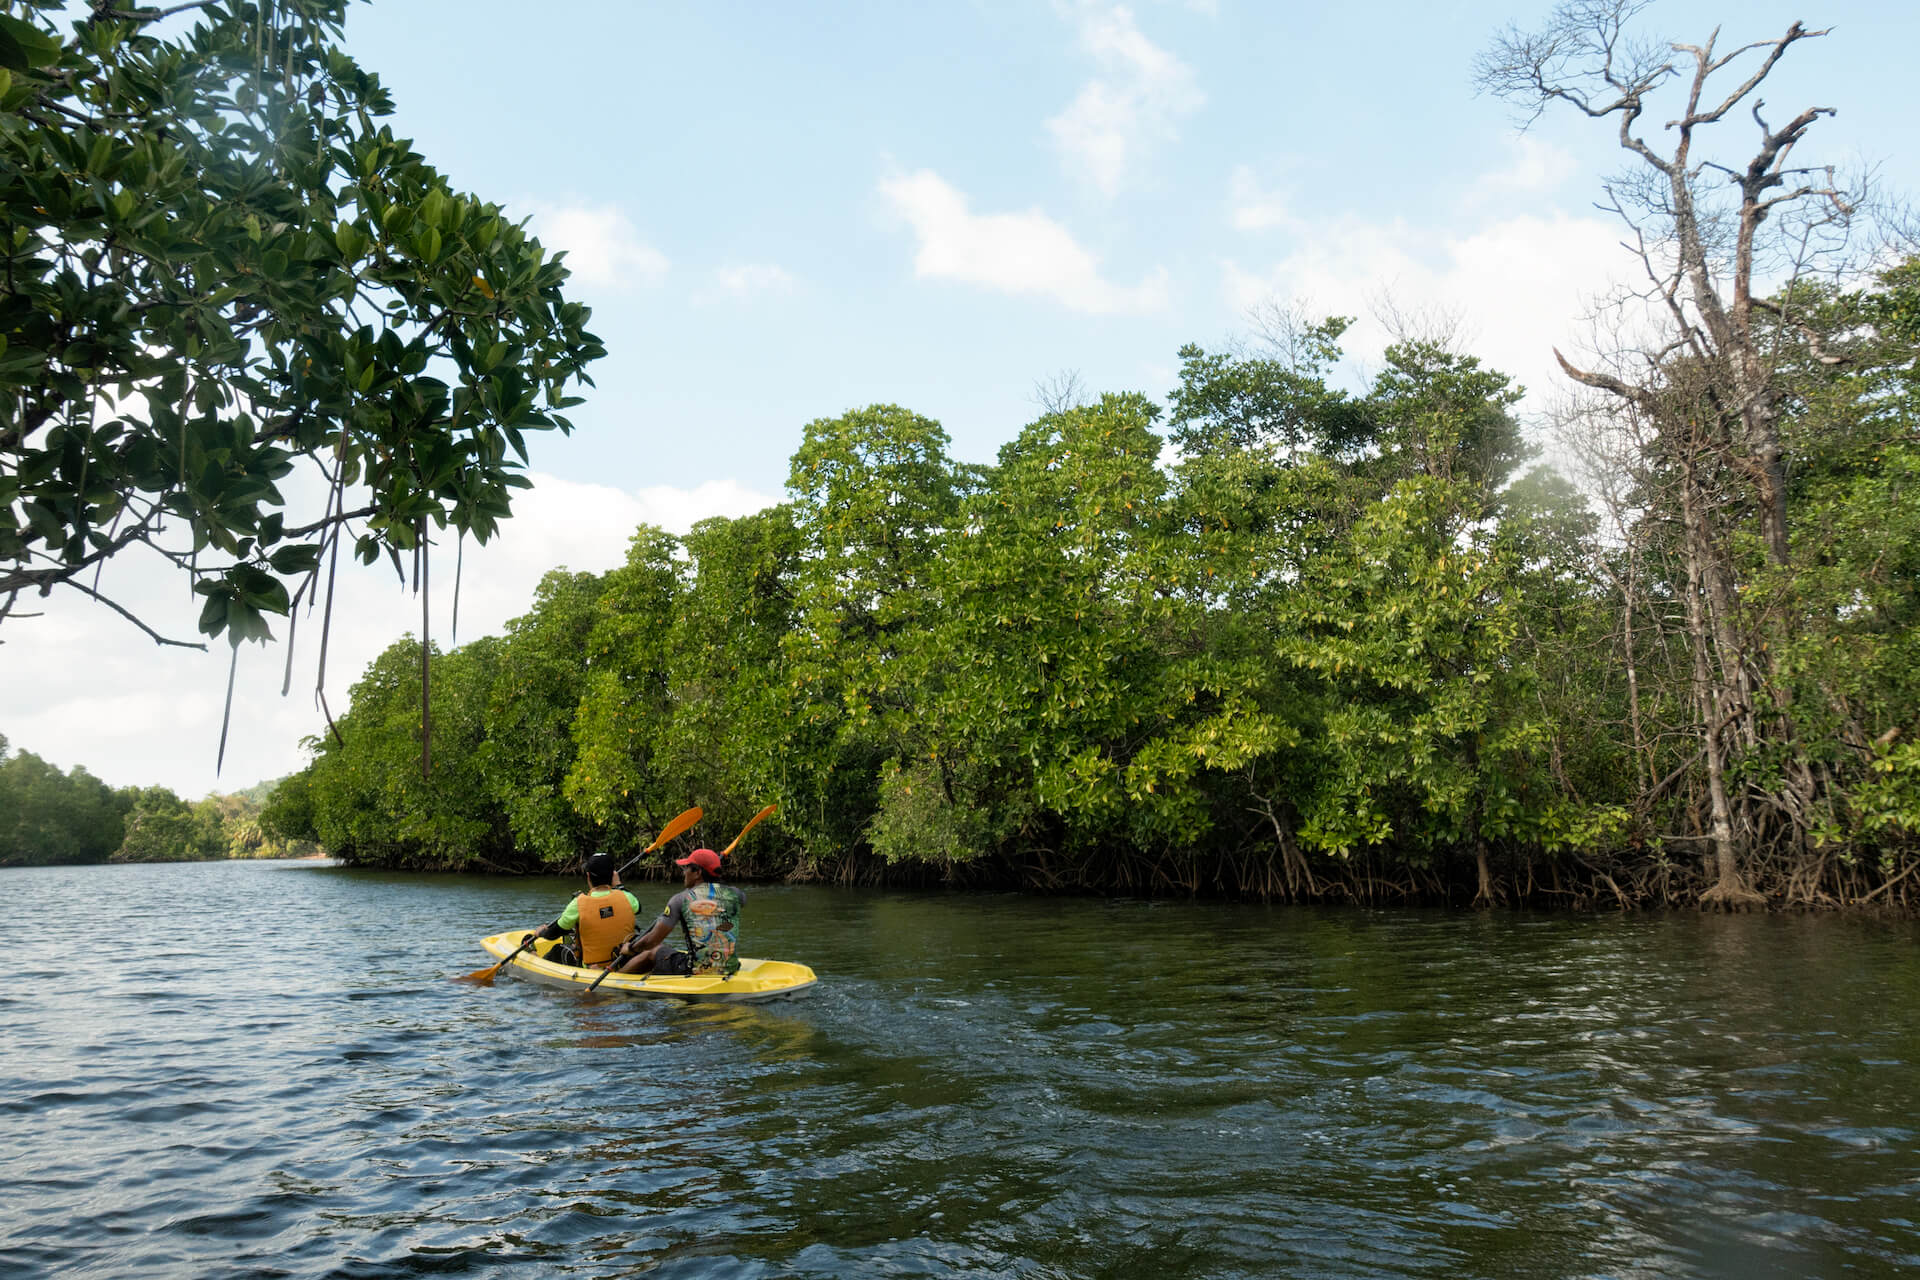 Kayaking in Decalachao